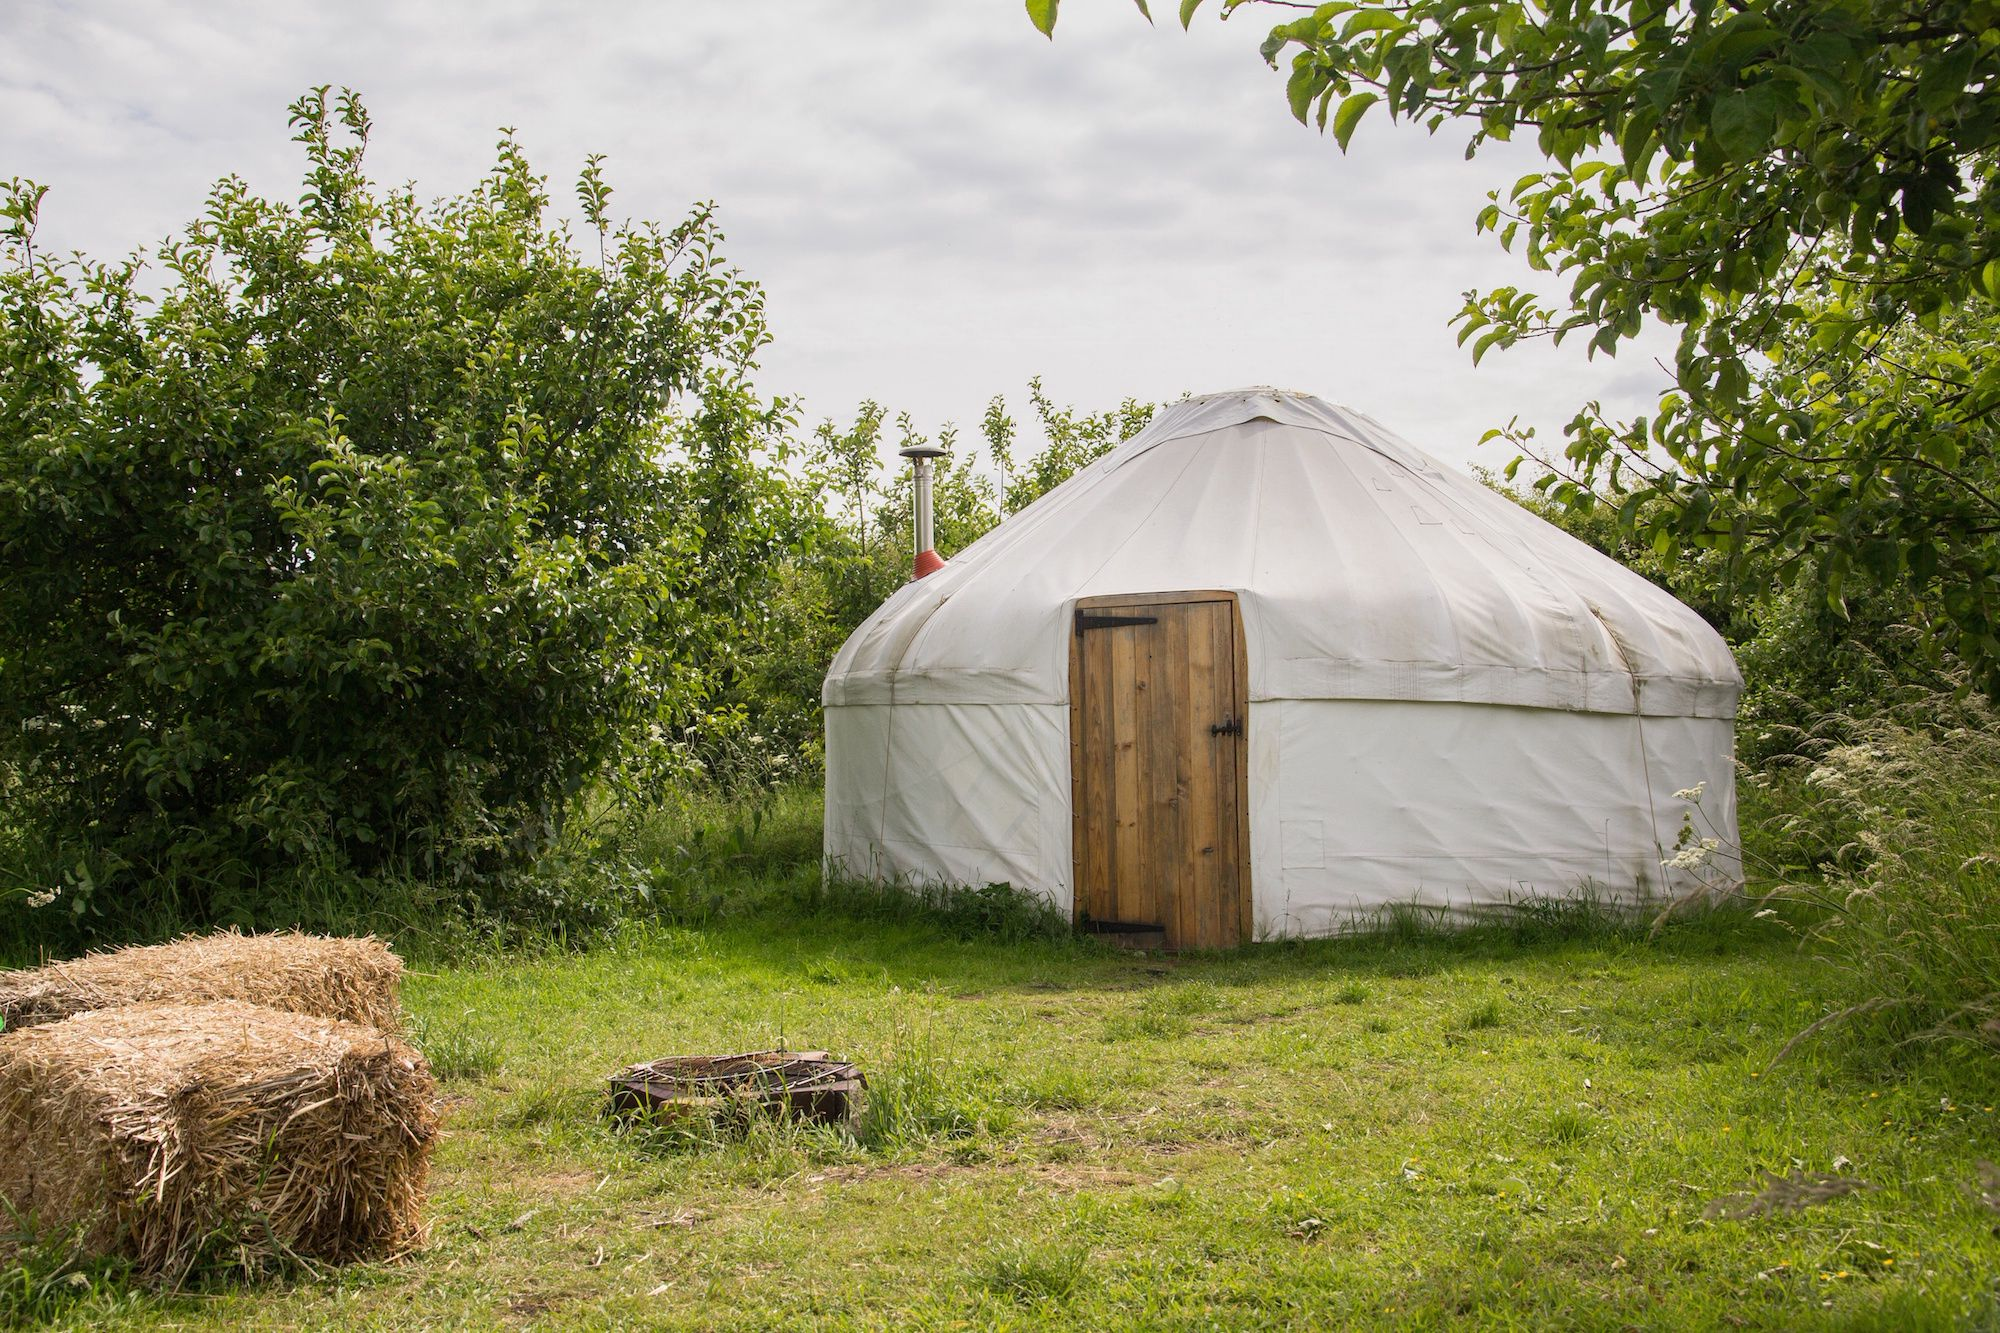 Our Most Popular Glamping & Luxury Camping Sites